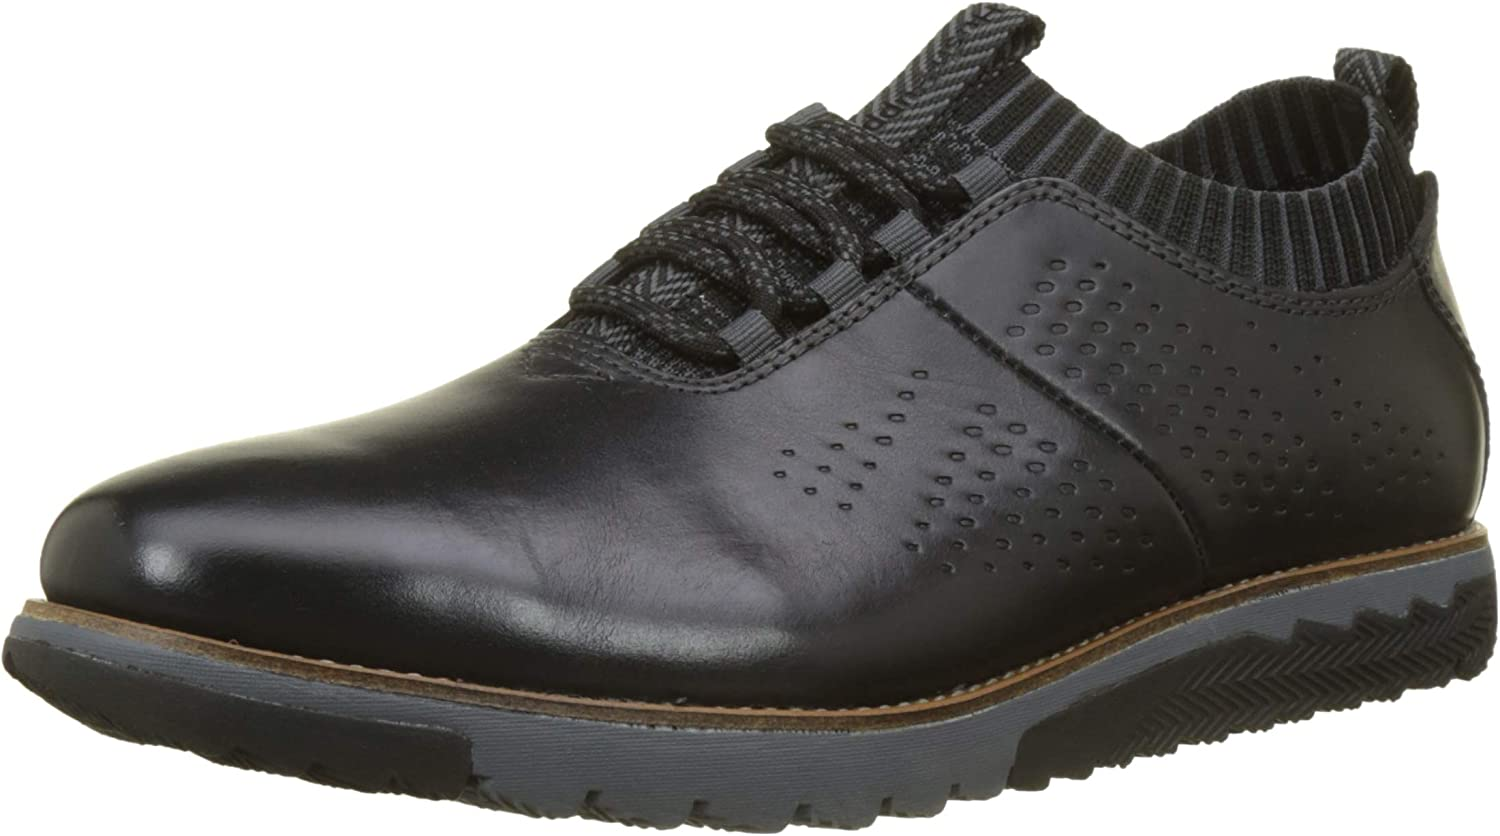 Hush Puppies Exp Knit Oxford, Men's Low-Top Trainers